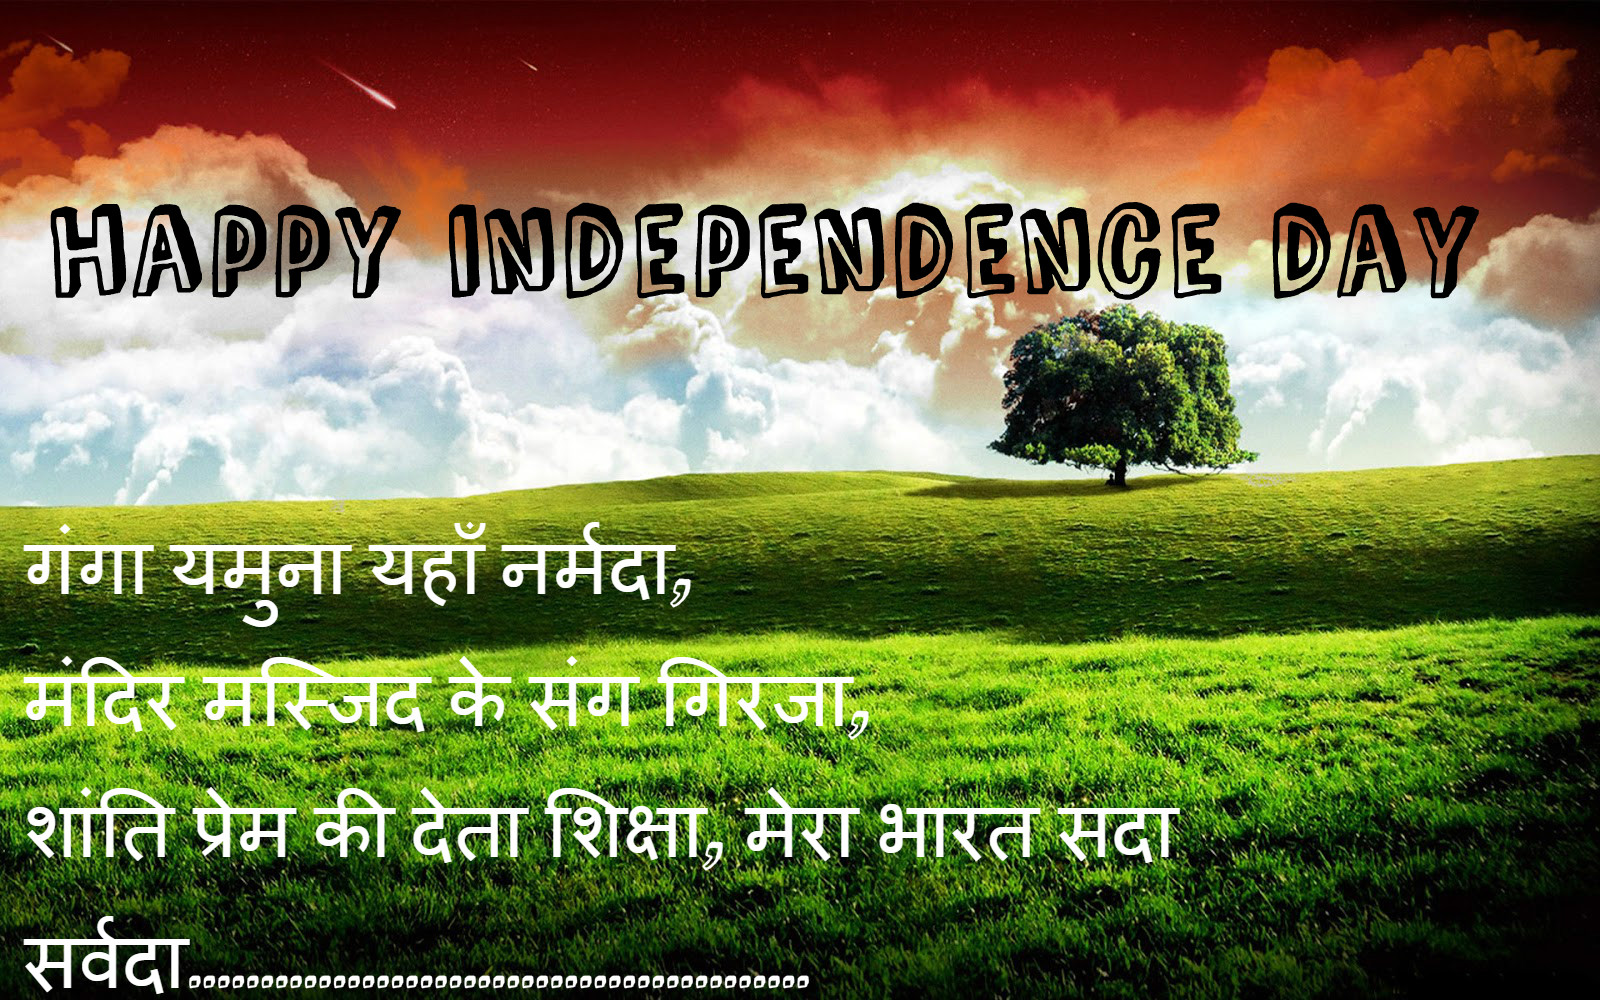 Happy 15th August/ Independence Day Shayari in Hindi